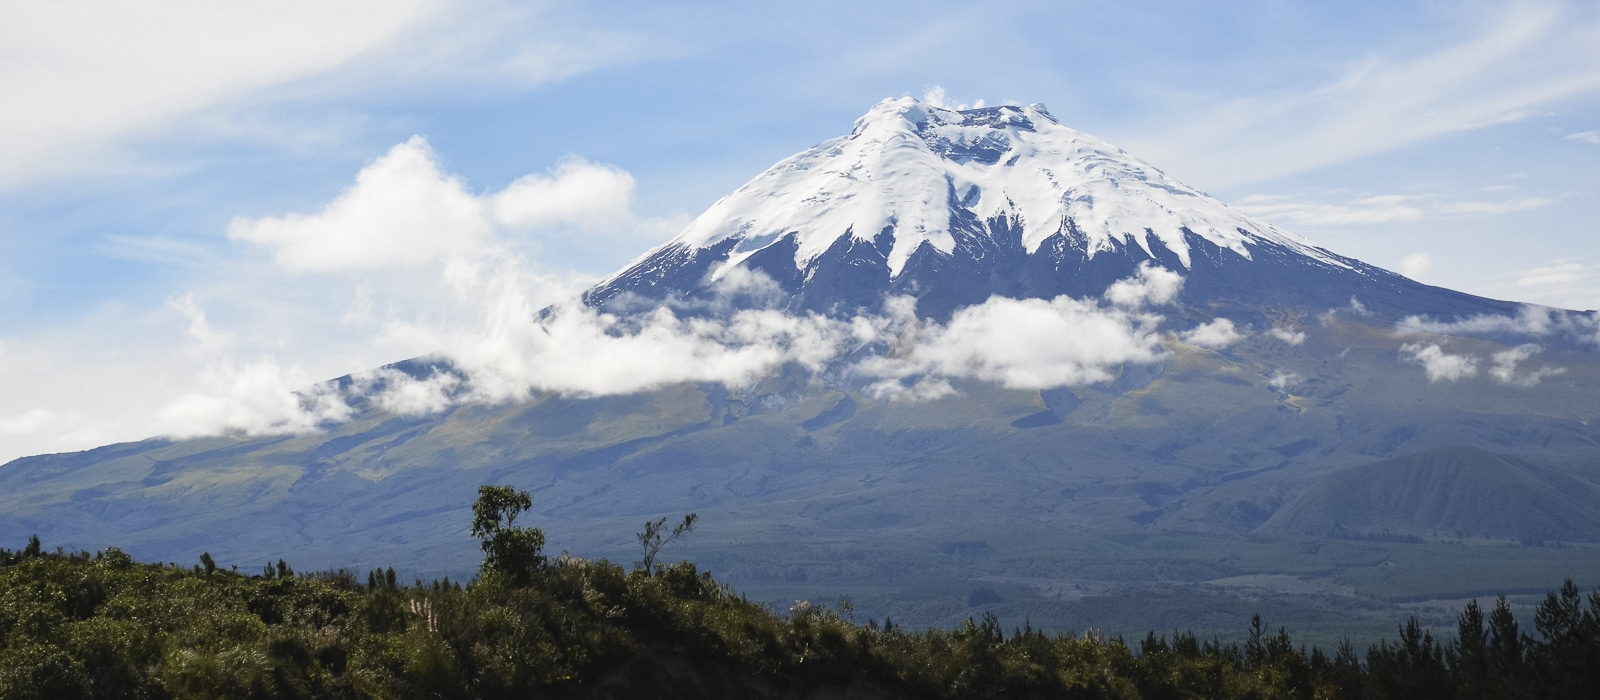 img-diapo-entete - Equateur-1600x700-15.jpg